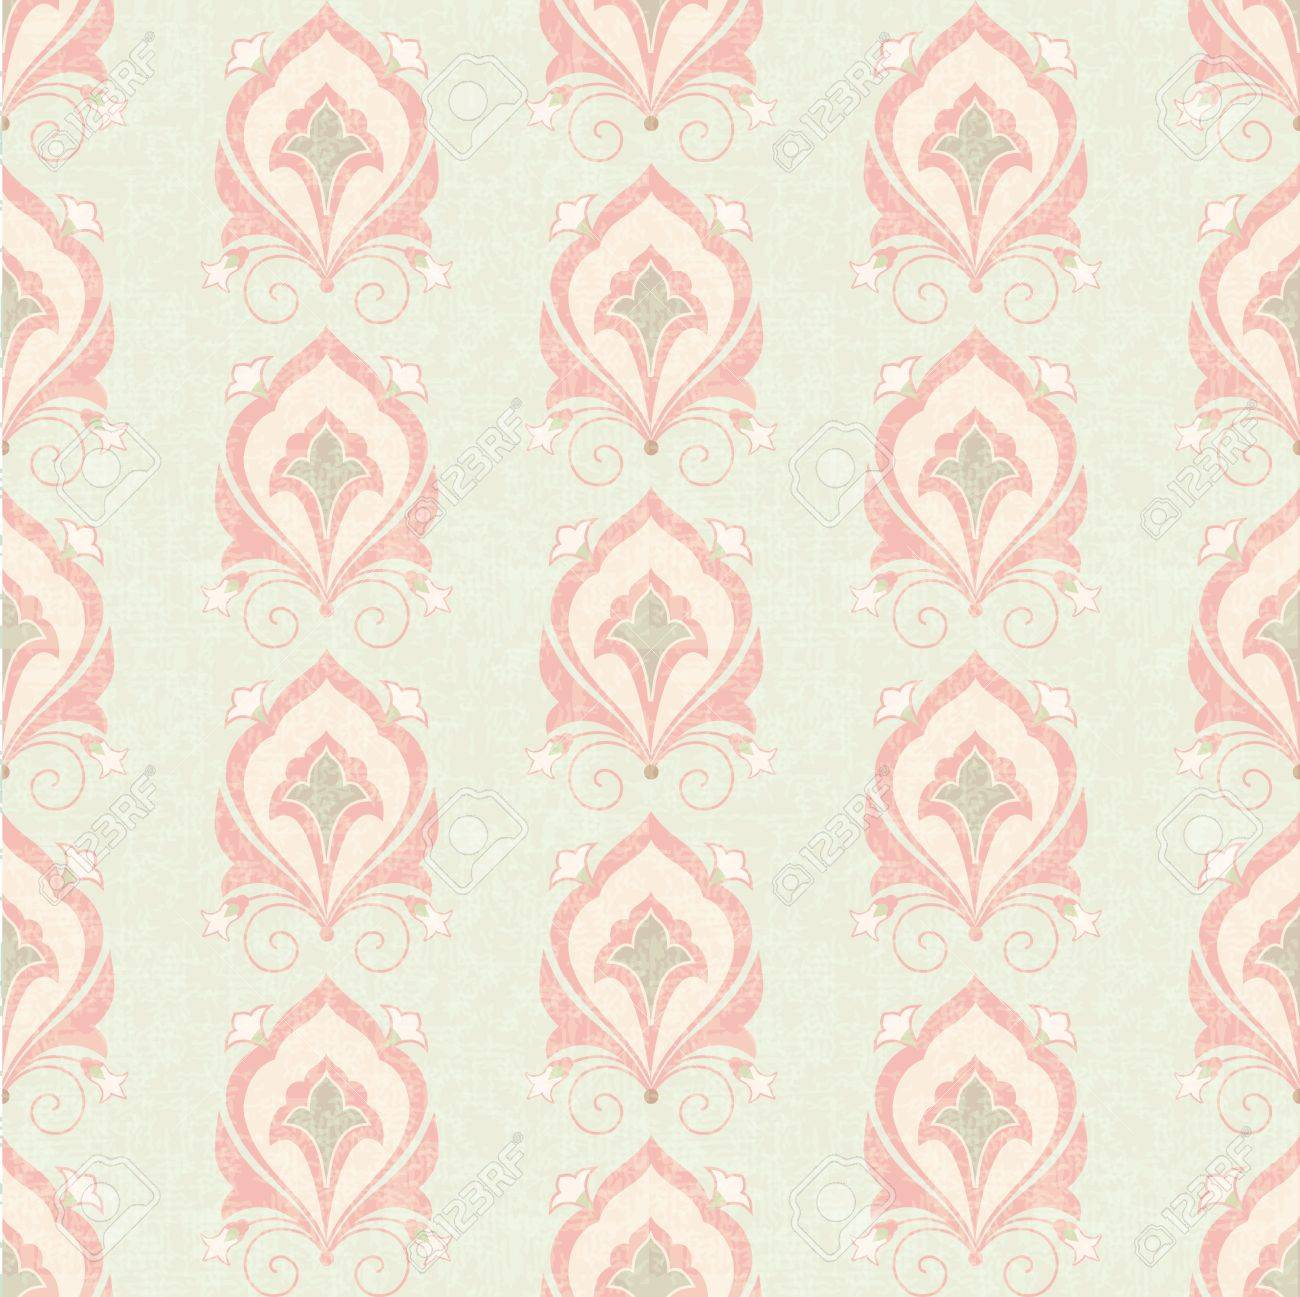 Old Classic Floral Seamless Wallpaper Royalty Free Cliparts